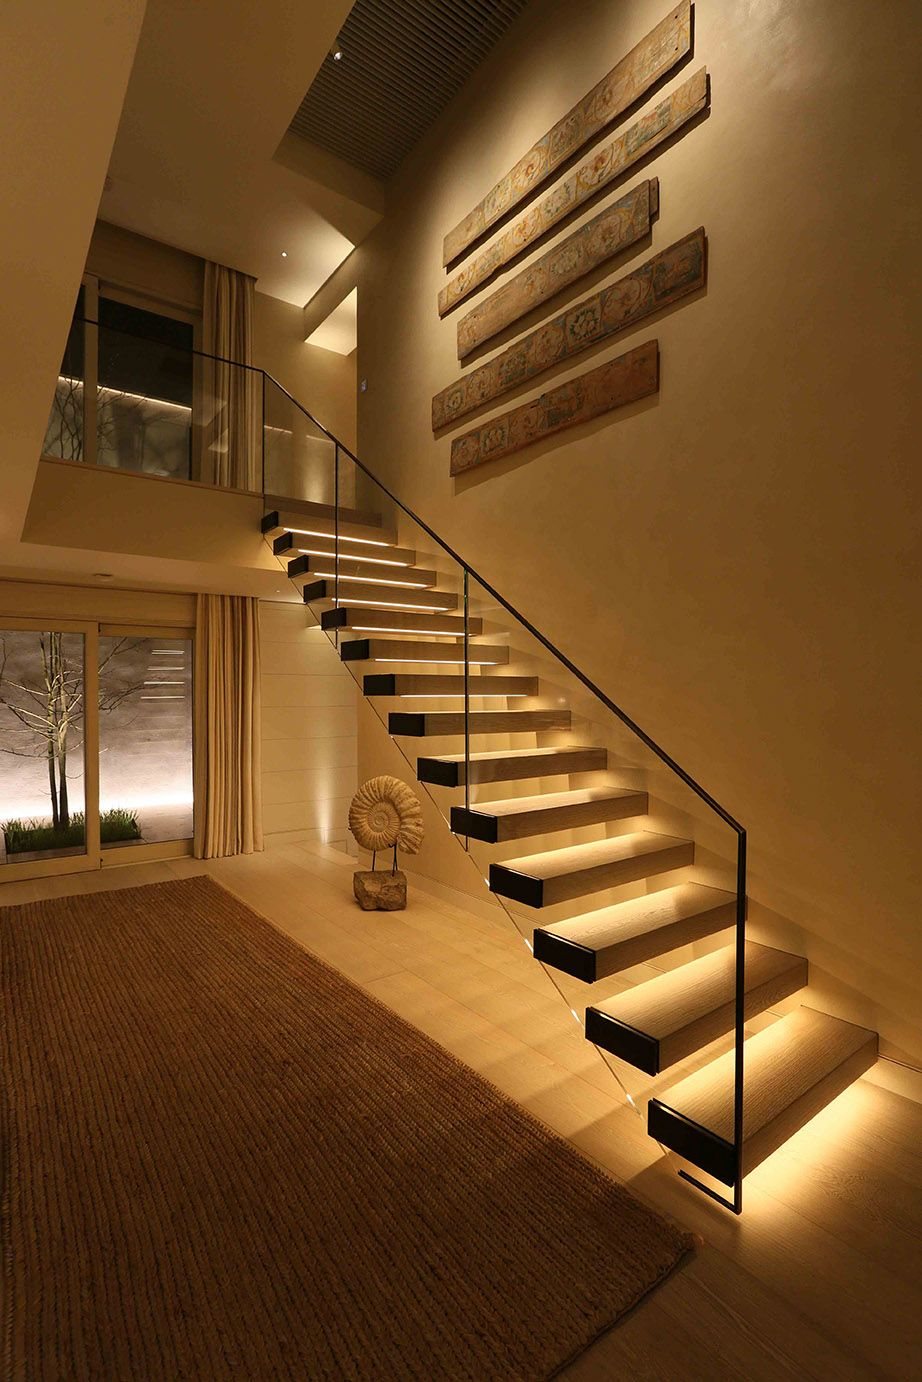 Merveilleux 10 Most Popular Light For Stairways Ideas | Tags: Led Staircase Accent  Lighting, Stairway Banister Lighting, Stairway Lighting Ideas, Stairway  Lighting ...